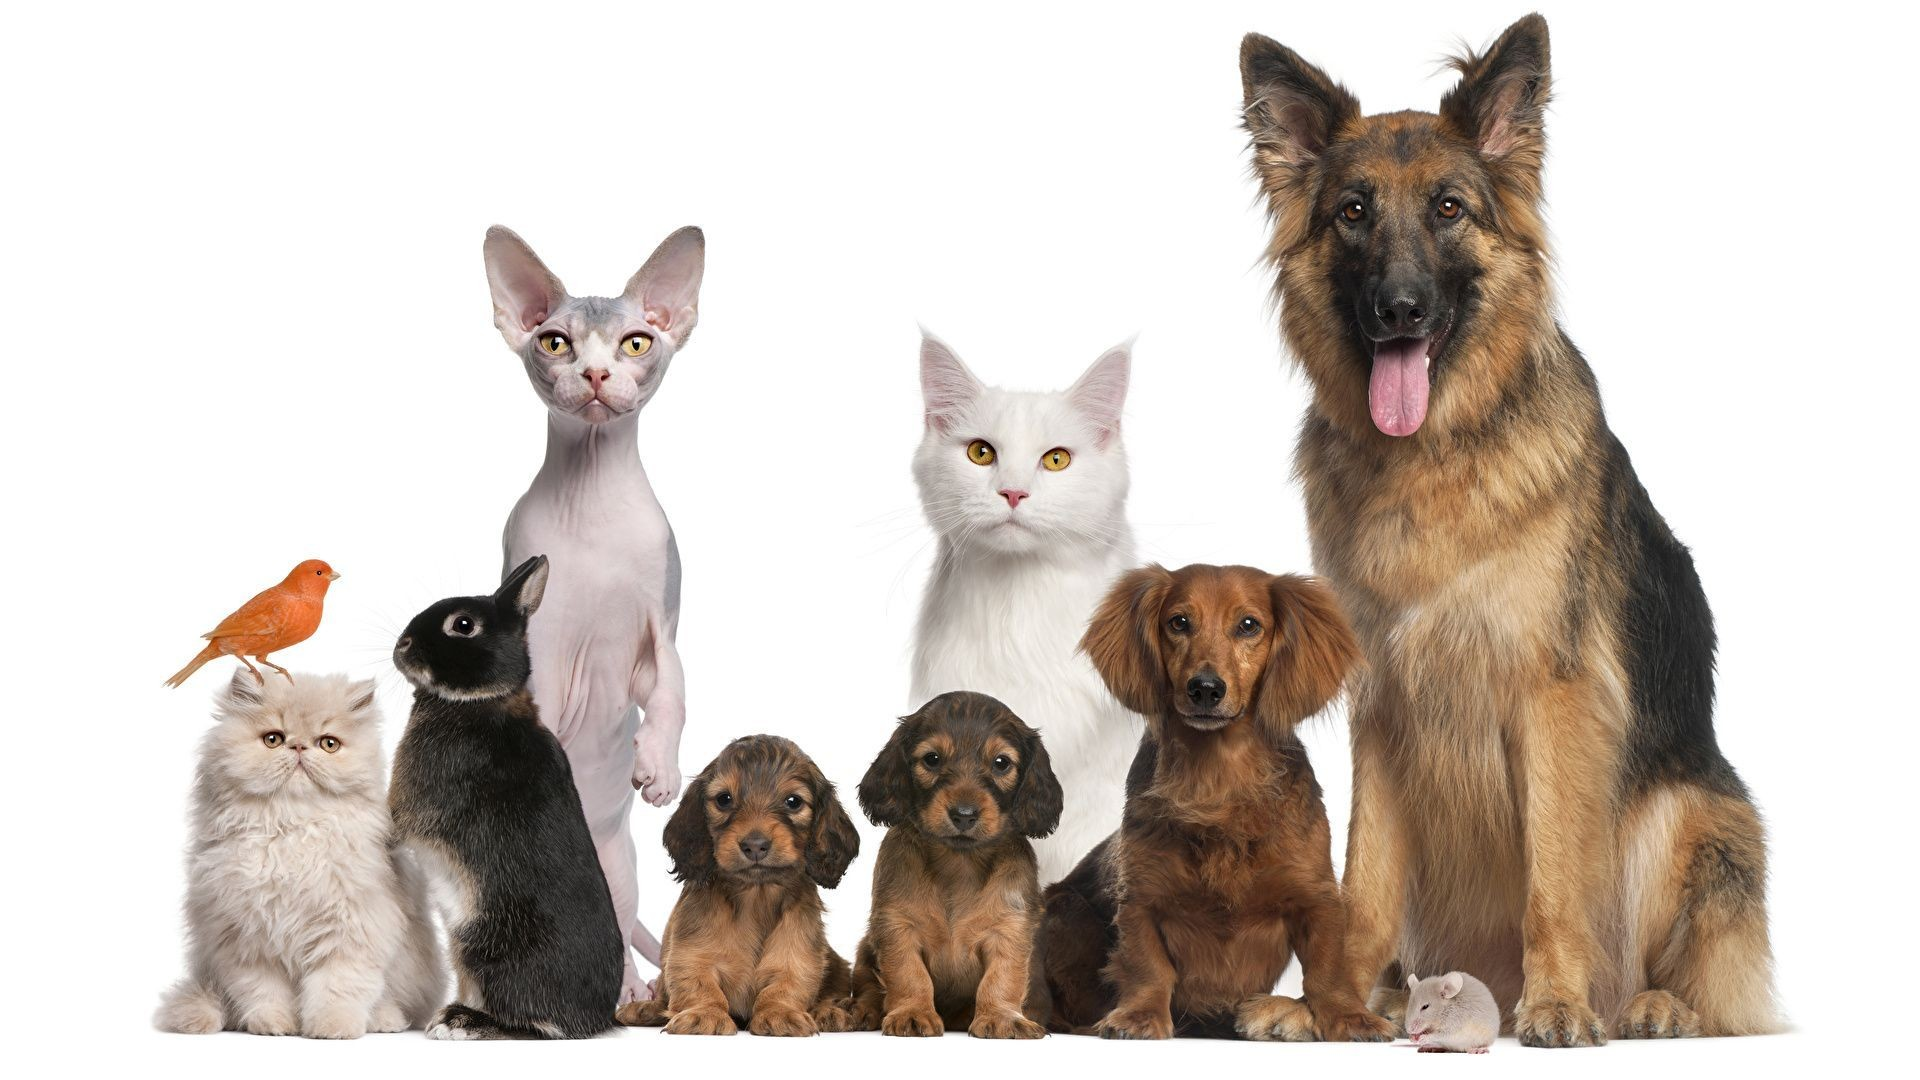 Dogs_Cats_Rabbits_White_background_Shepherd_Puppy_526372_1920x1080